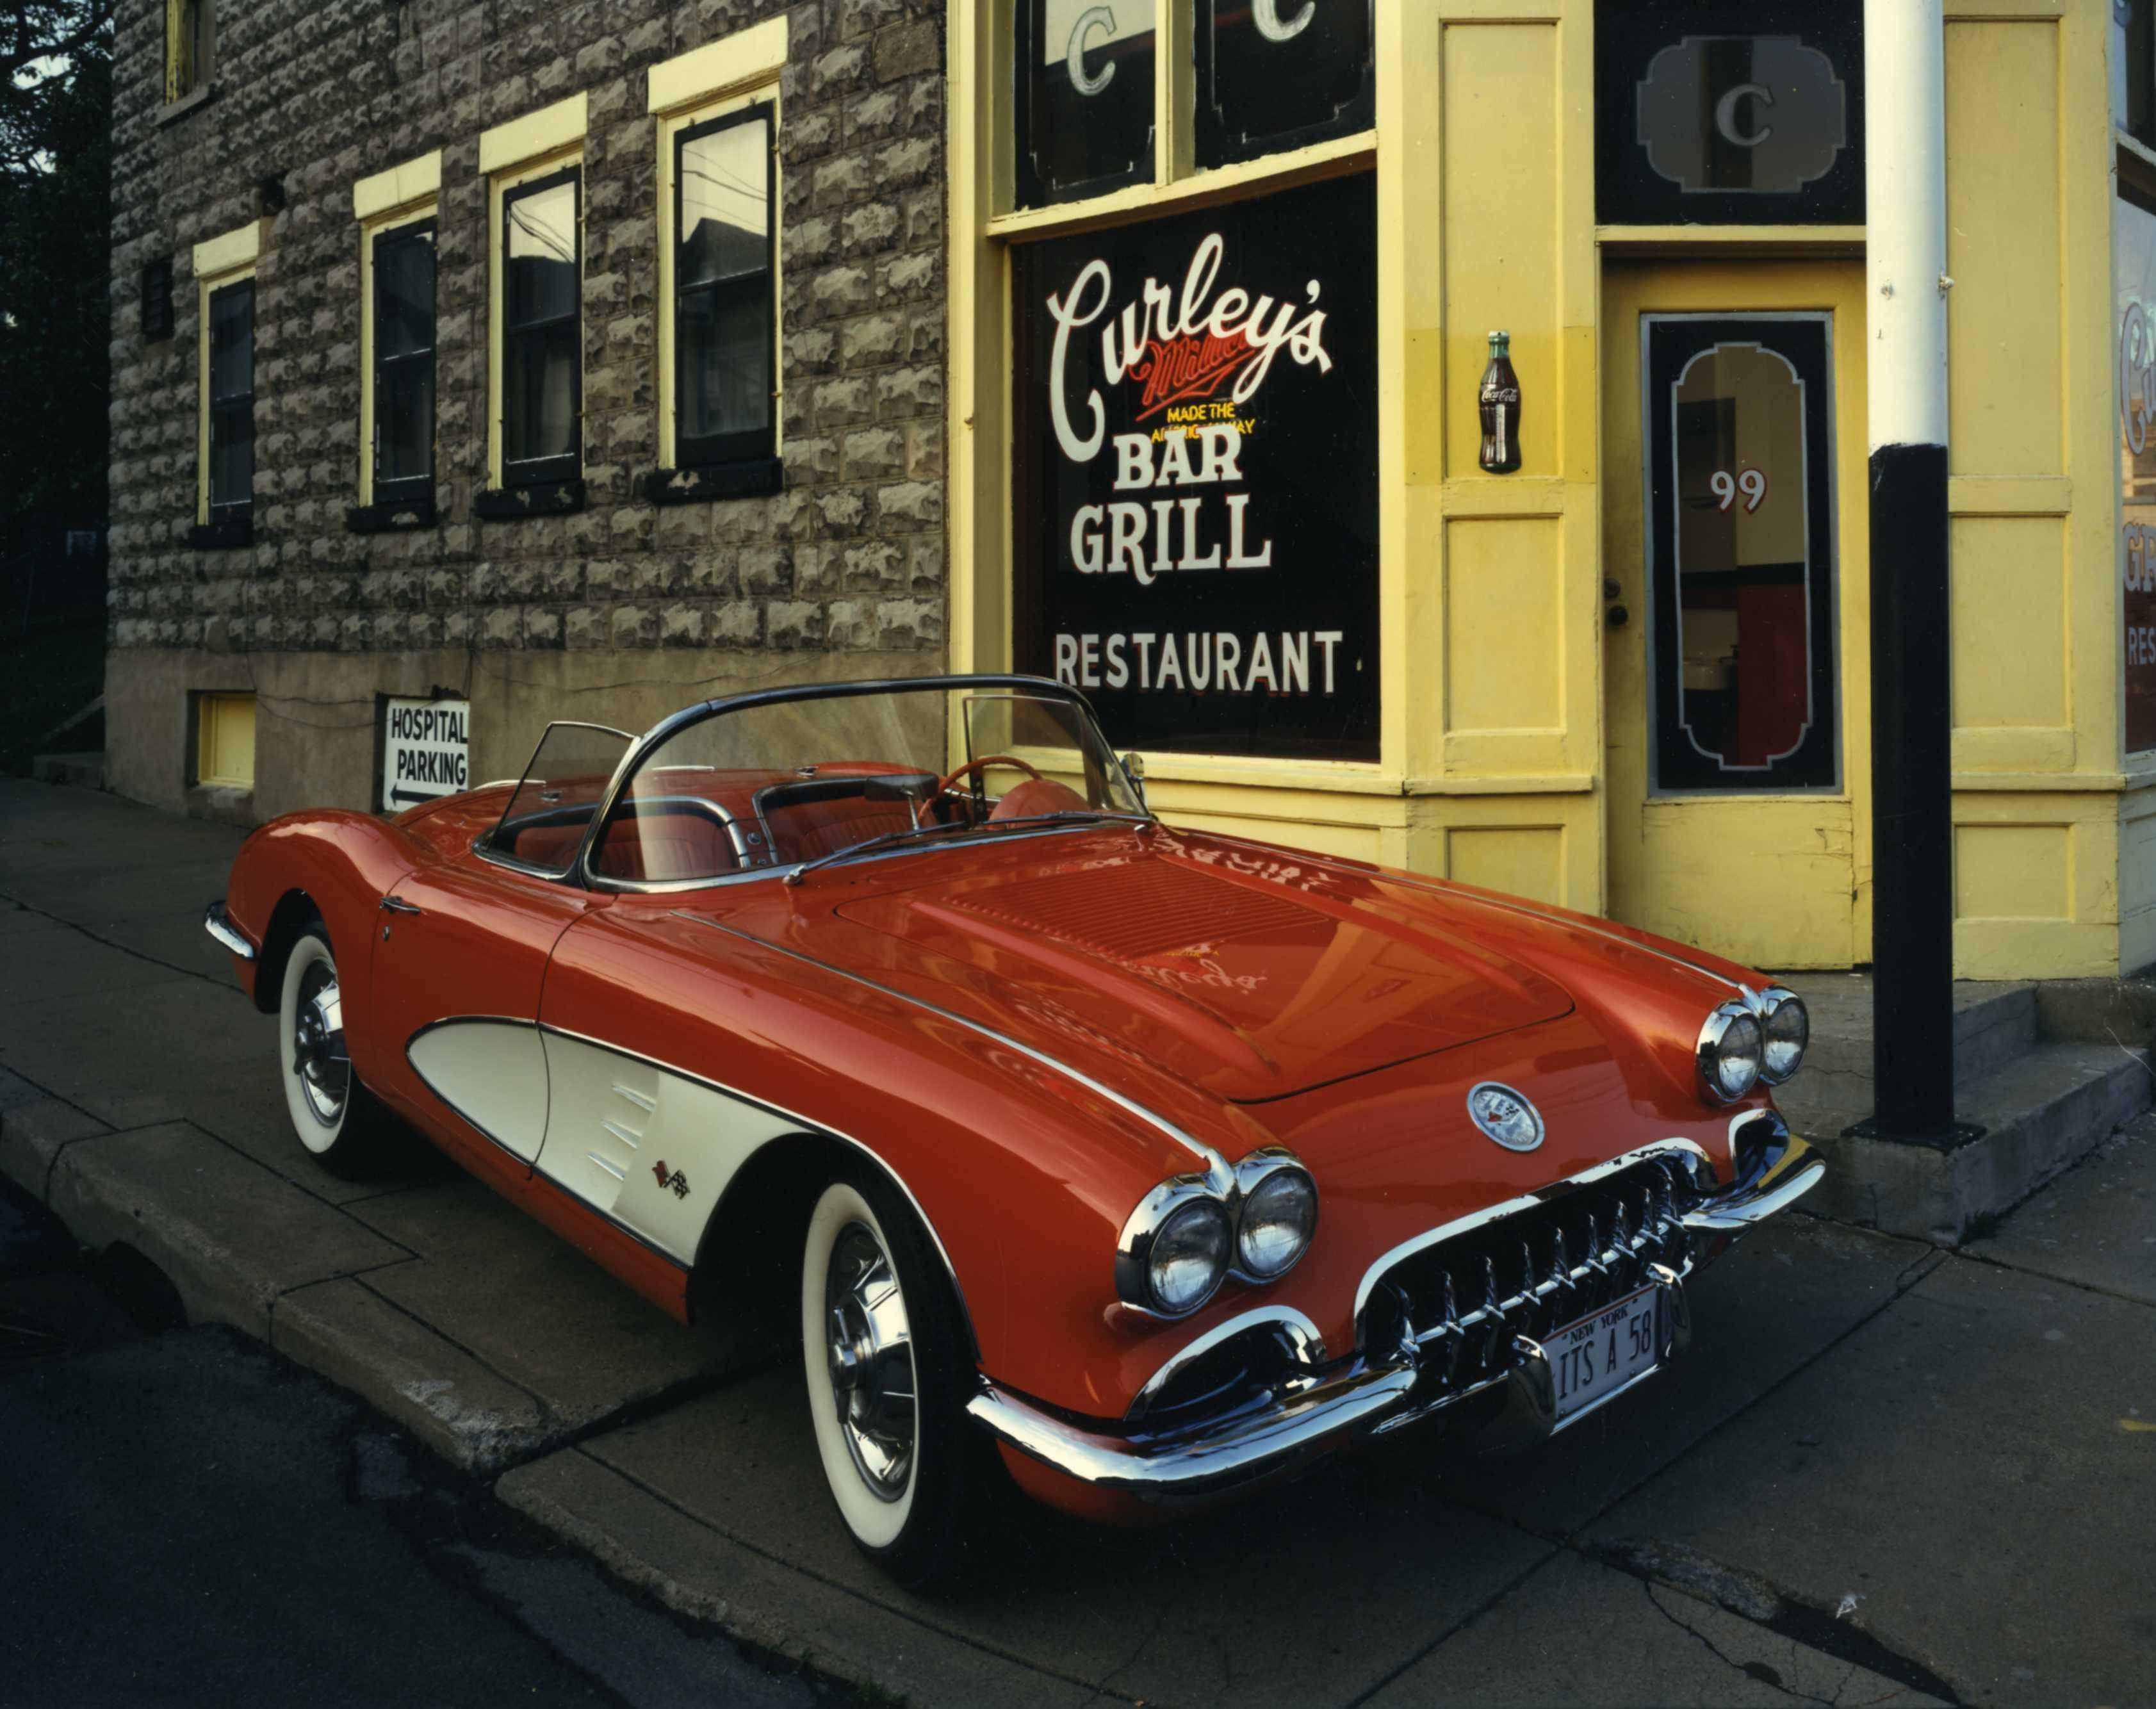 1958 Corvette, Curley's Bar and Grill, Johnson City, New york